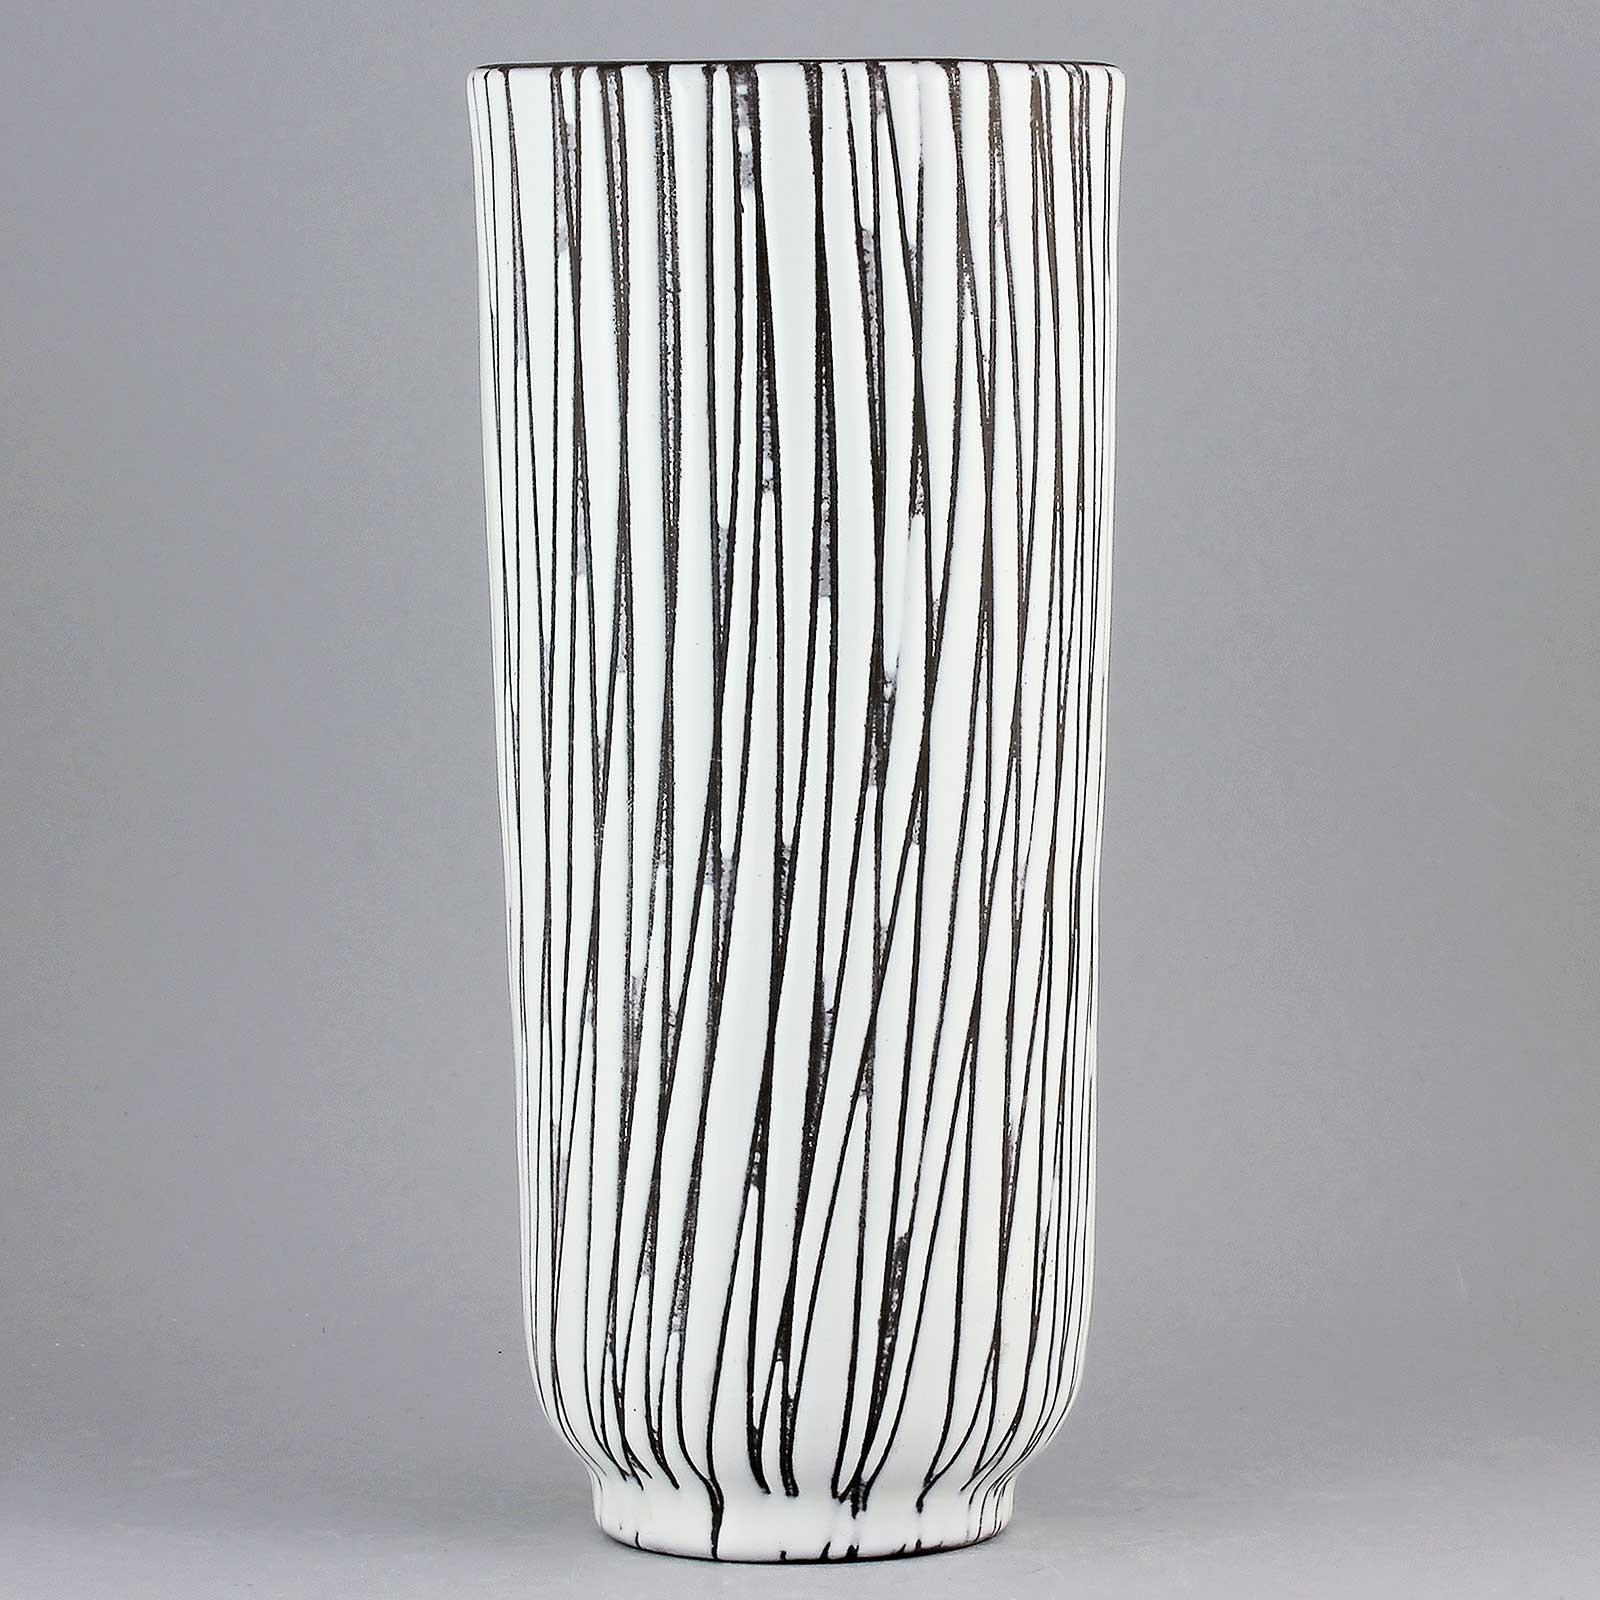 18 Tall Cylinder Vase Of Mari Simmulson Mars 1952 Striking Cylinder Vase within 160825699 origpic E7f23b